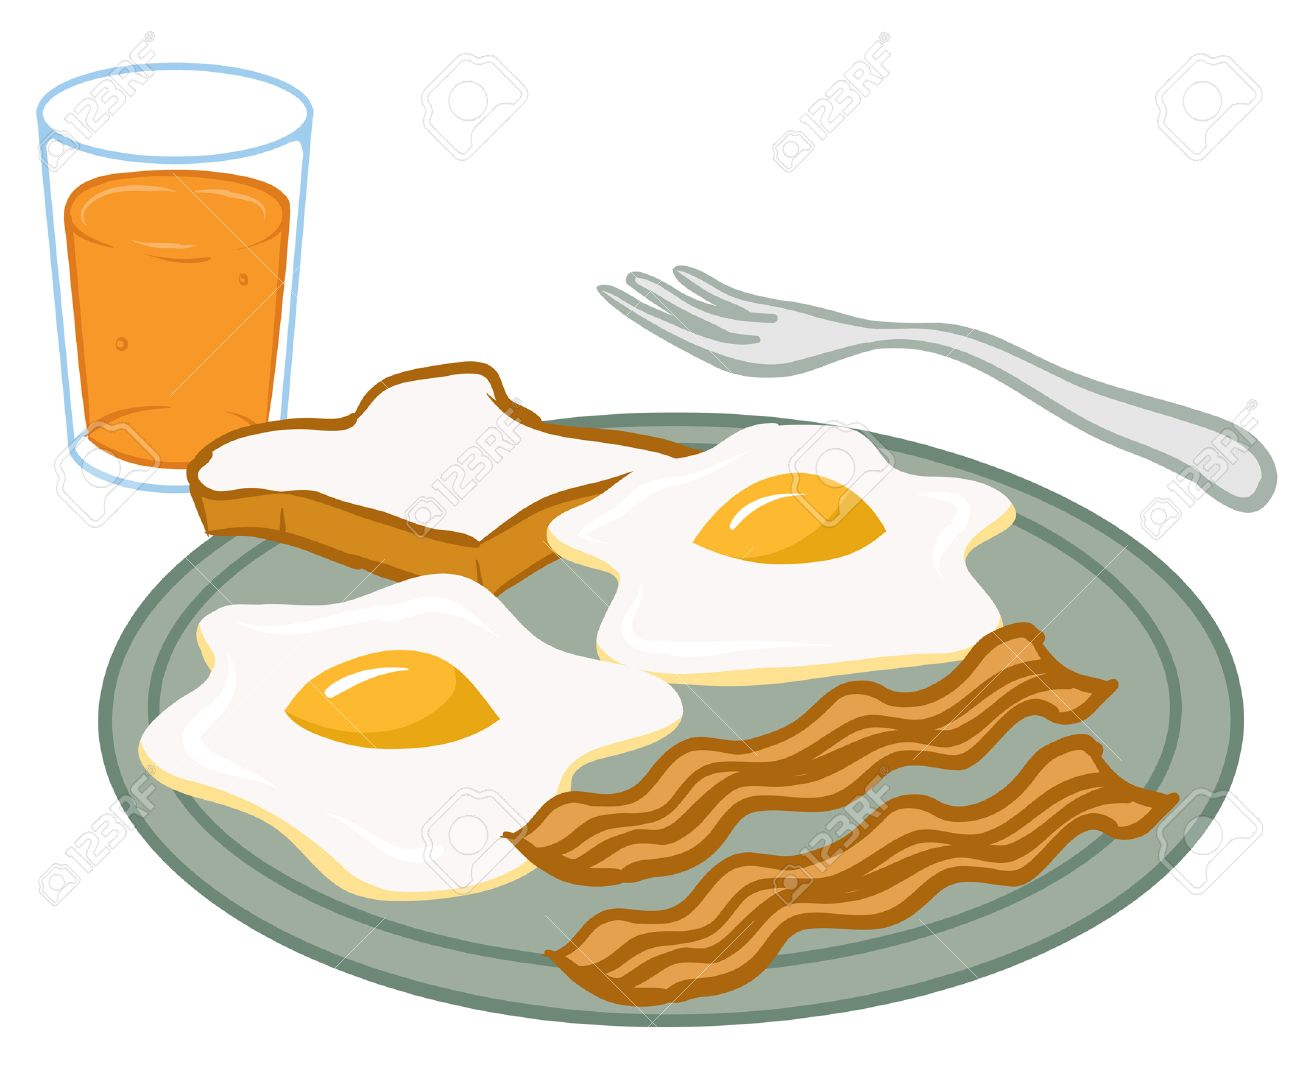 An Illustration Of A Plate Of Breakfast Food Royalty Free Cliparts Vectors And Stock Illustration Image 35459057